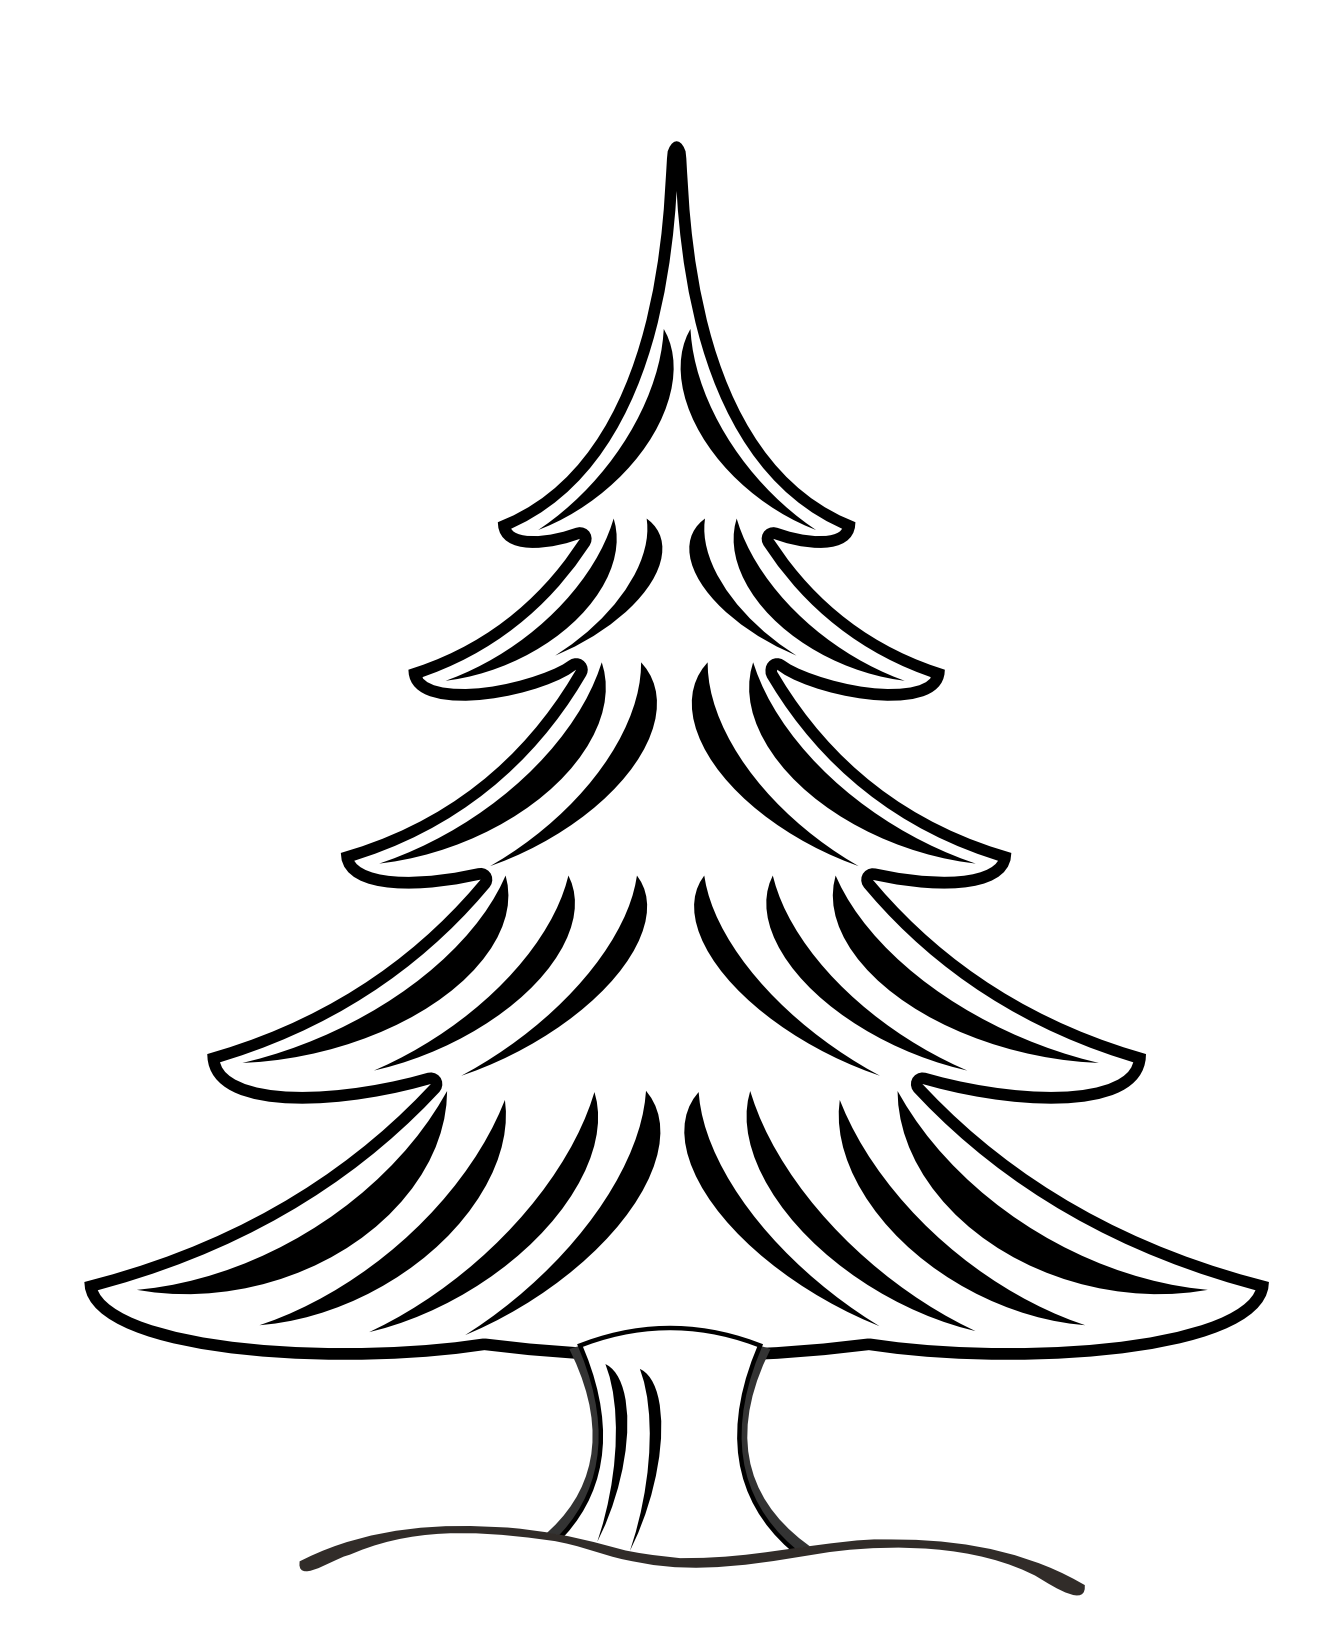 Christmas tree clipart black white picture royalty free download Tree Clipart Black And White | Clipart Panda - Free Clipart Images picture royalty free download